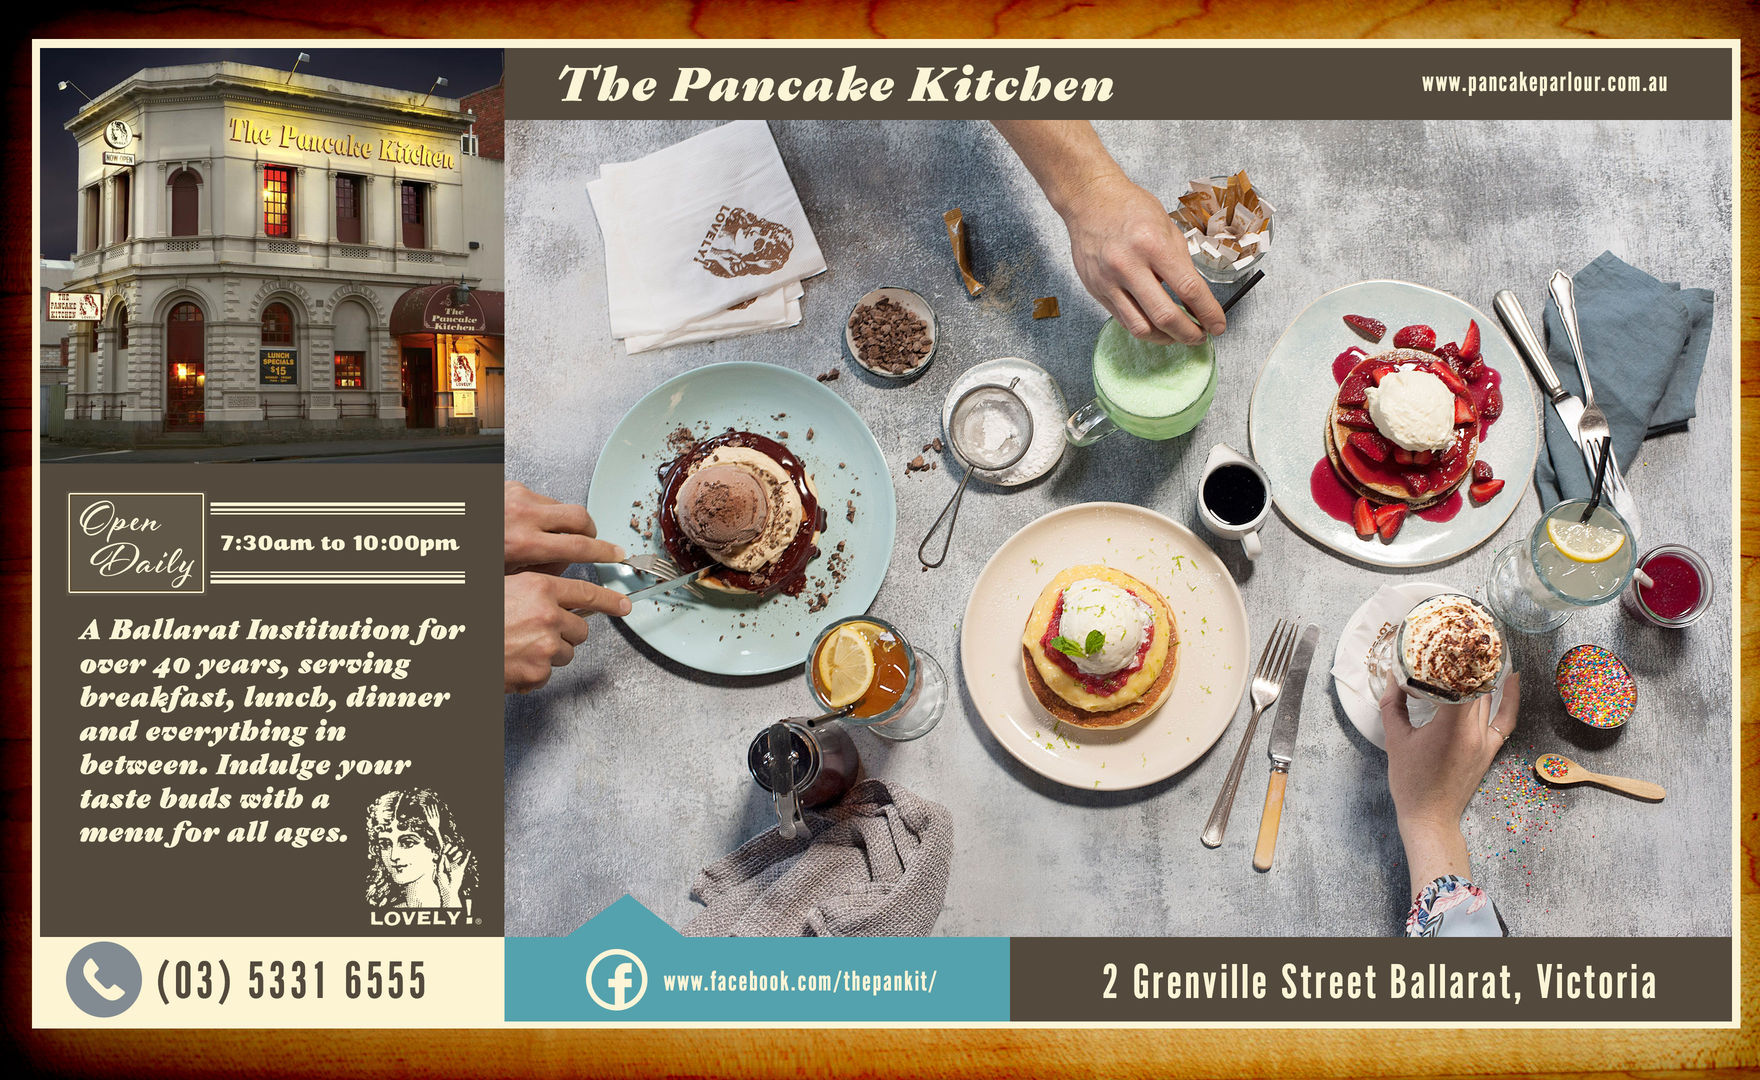 Pancake Kitchen Ballarat